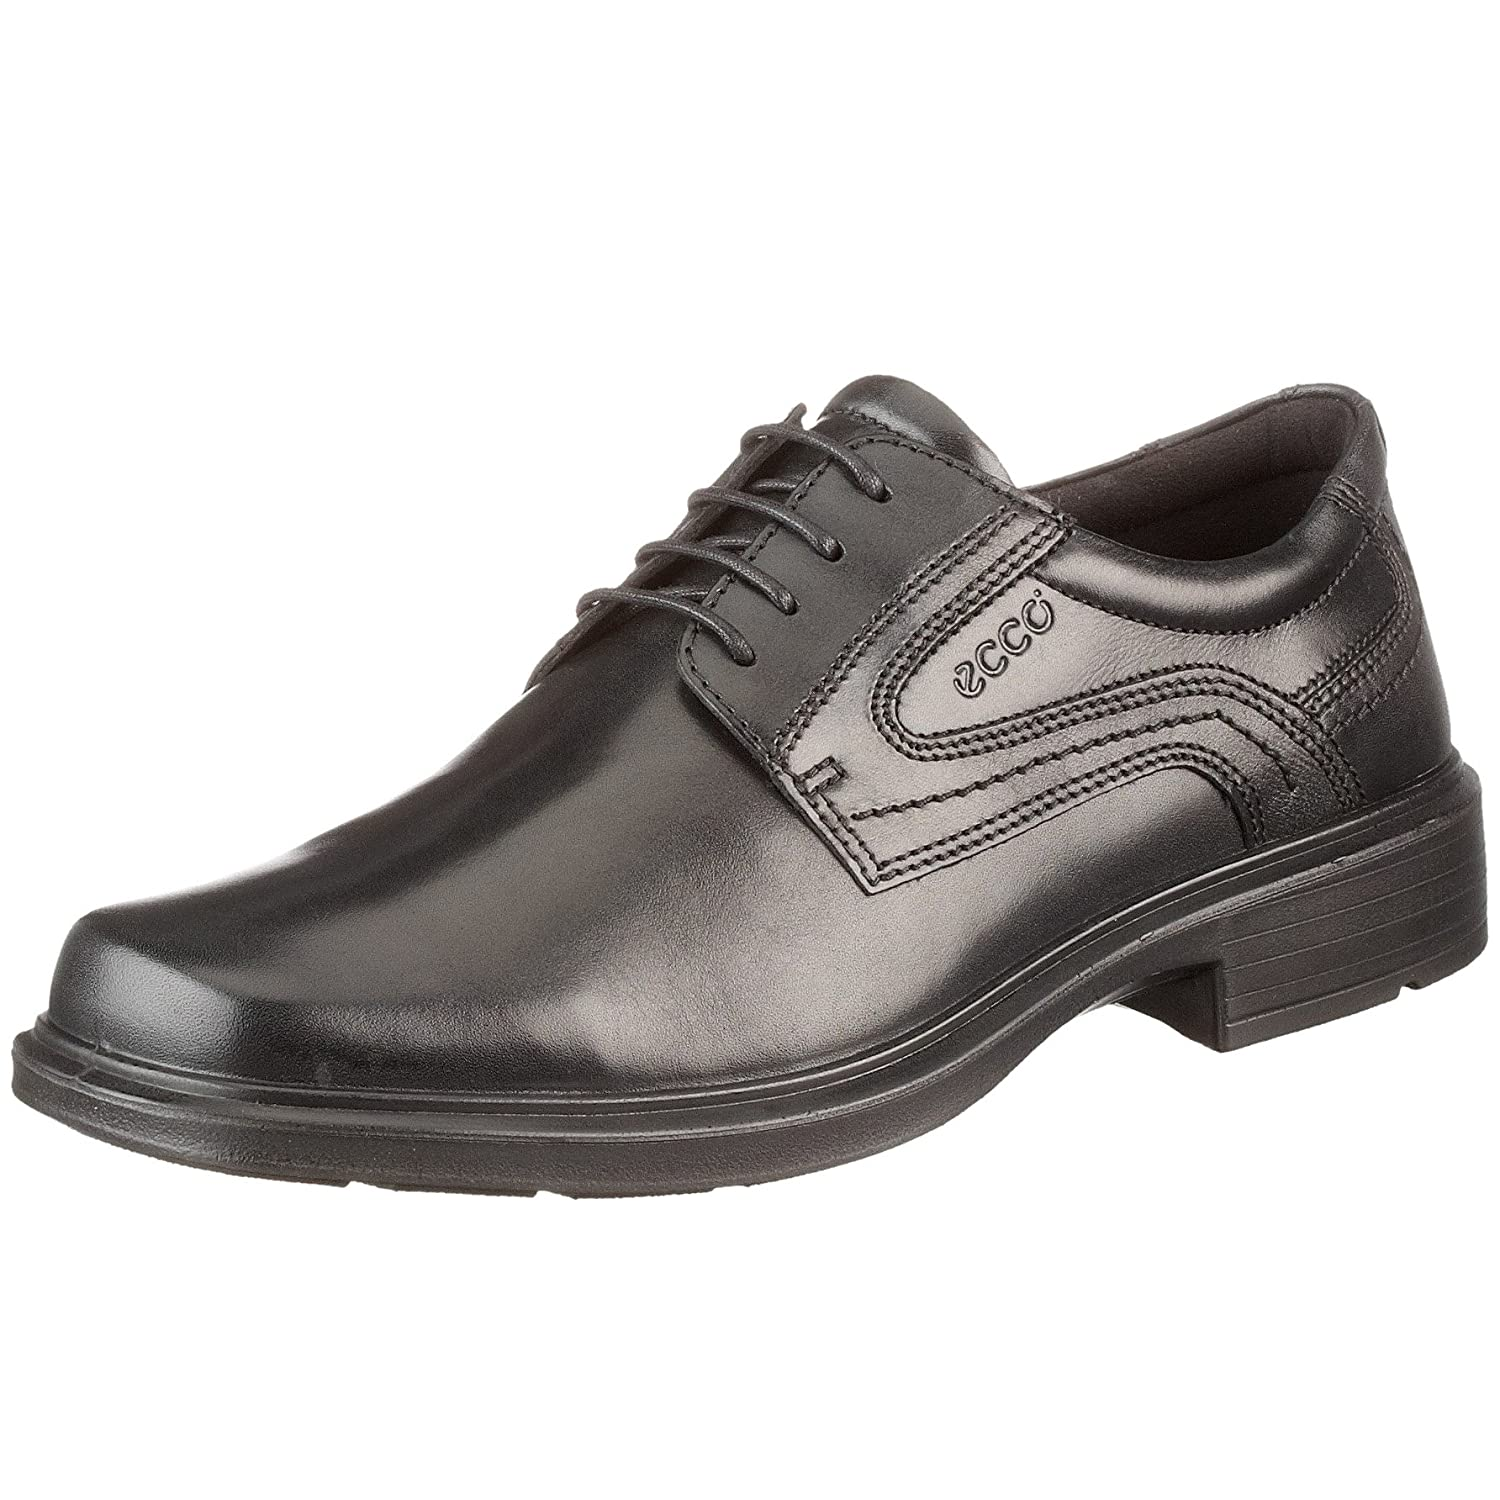 d2a4f21c66 ECCO Men's Helsinki Plain Toe Dress Oxford